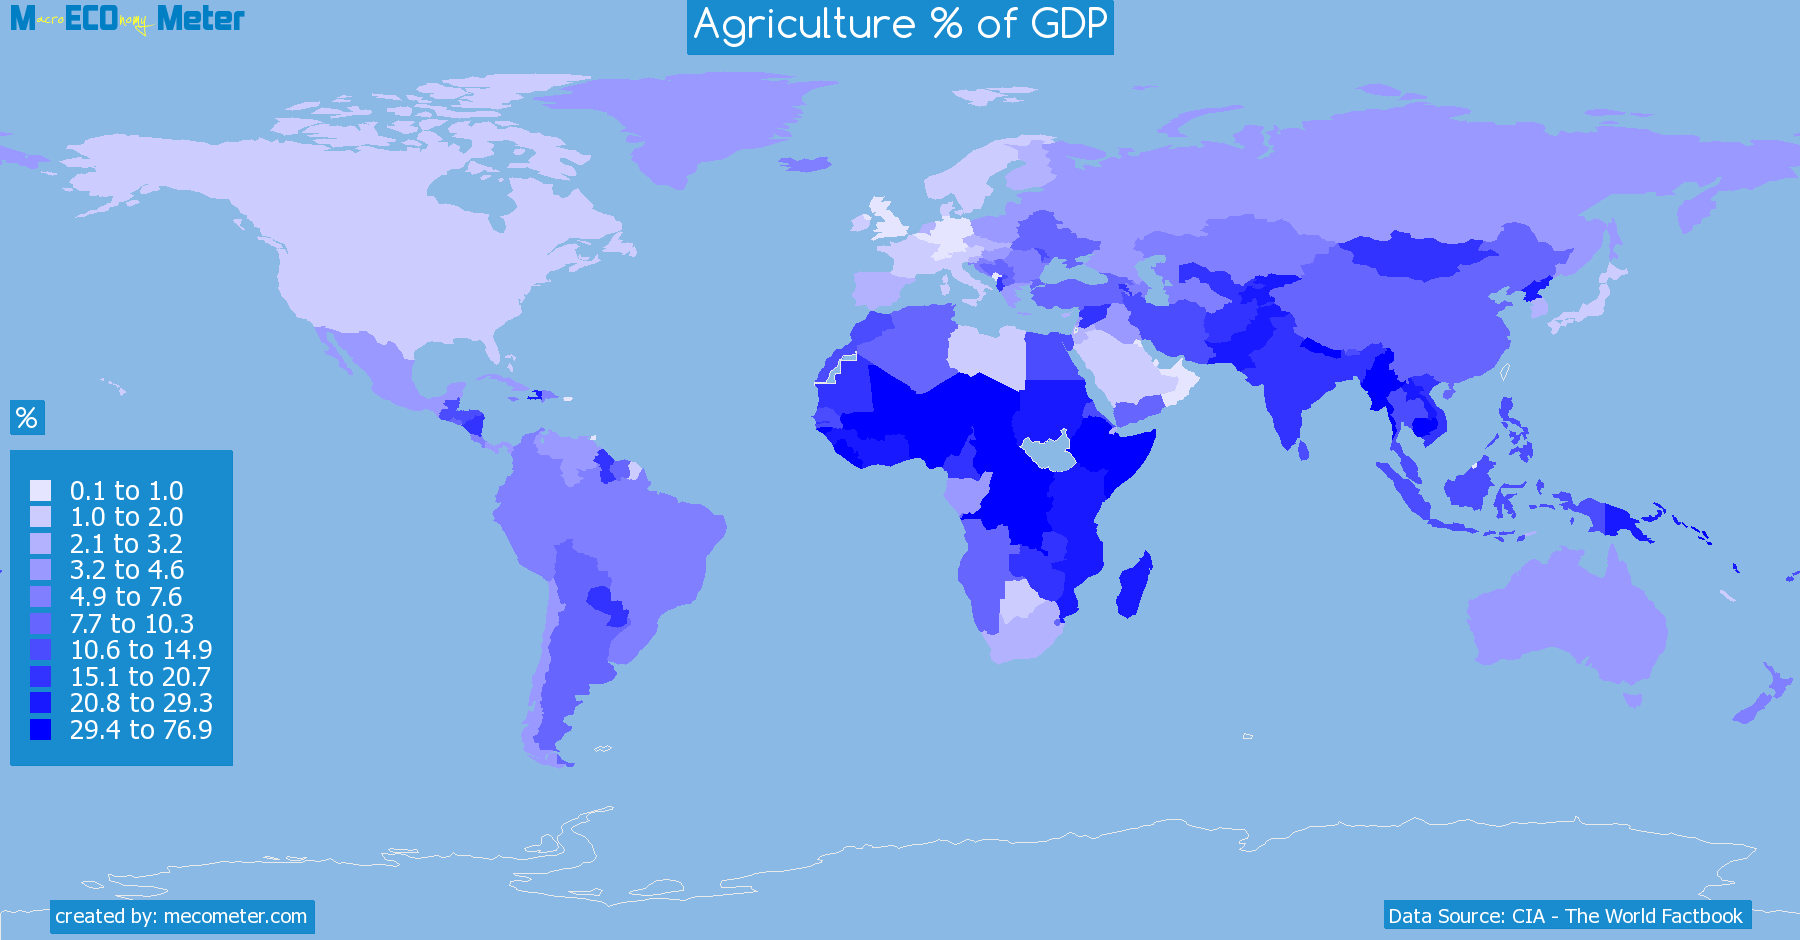 Worldmap of all countries colored to reflect the values of Agriculture % of GDP